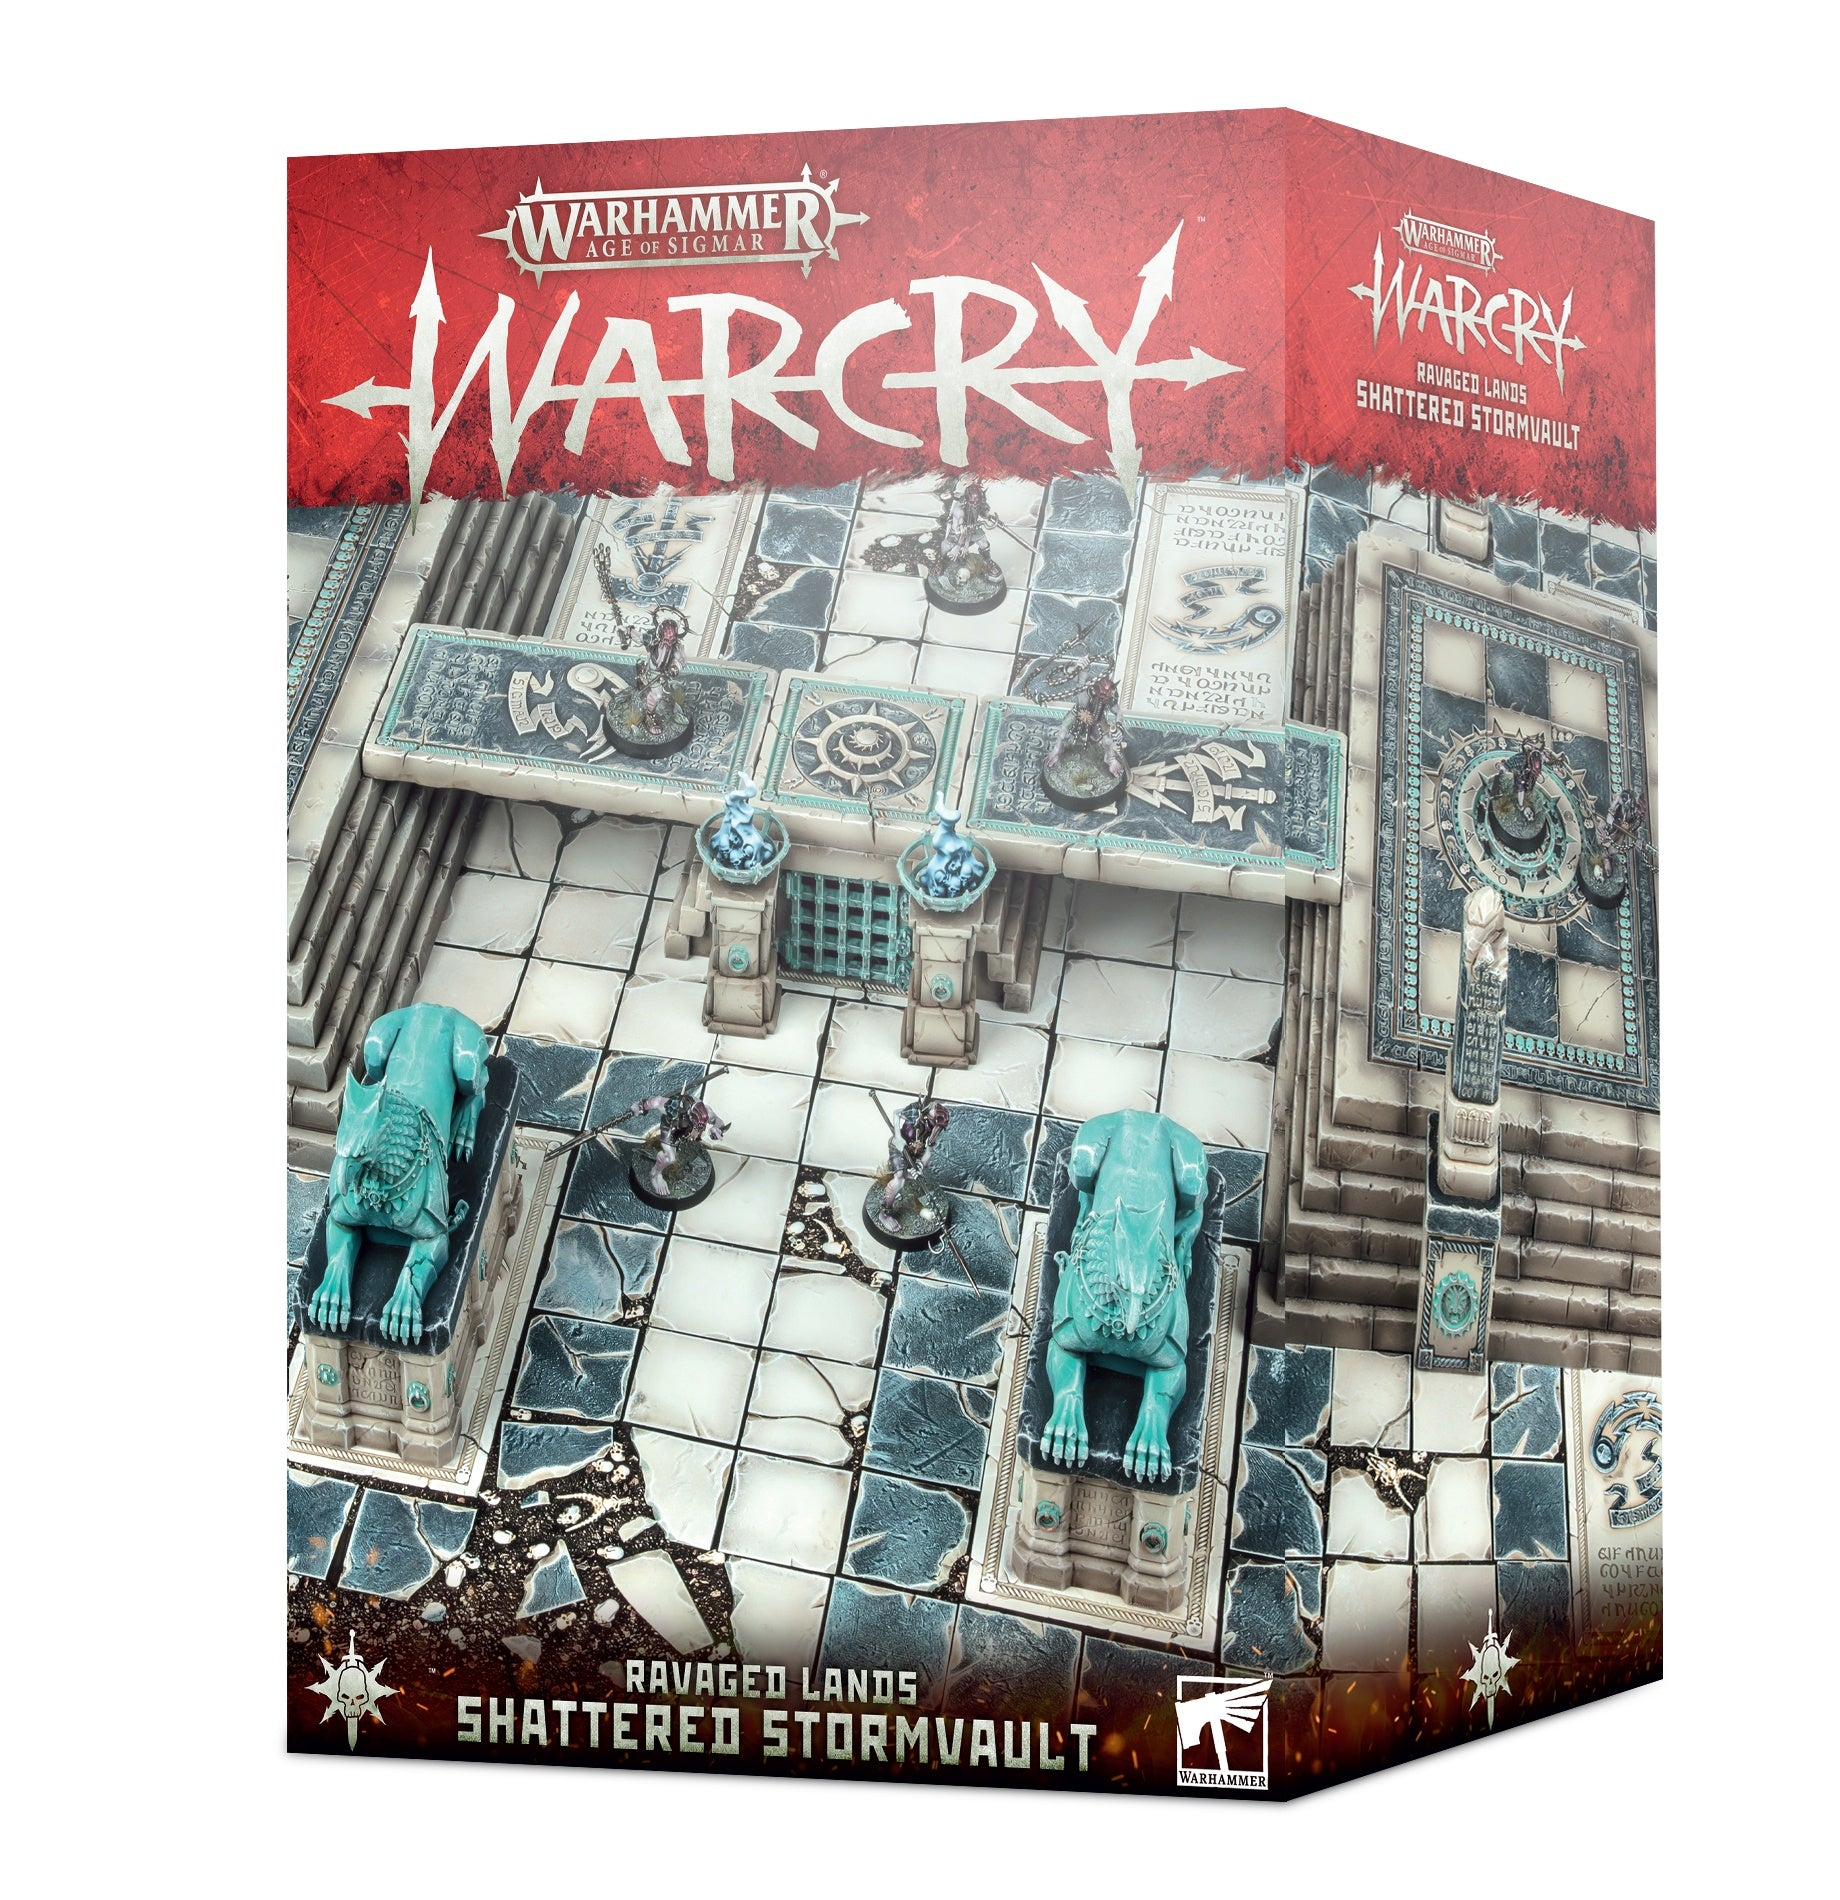 Warcry: Shattered Stormvault | Cascade Games | New Zealand